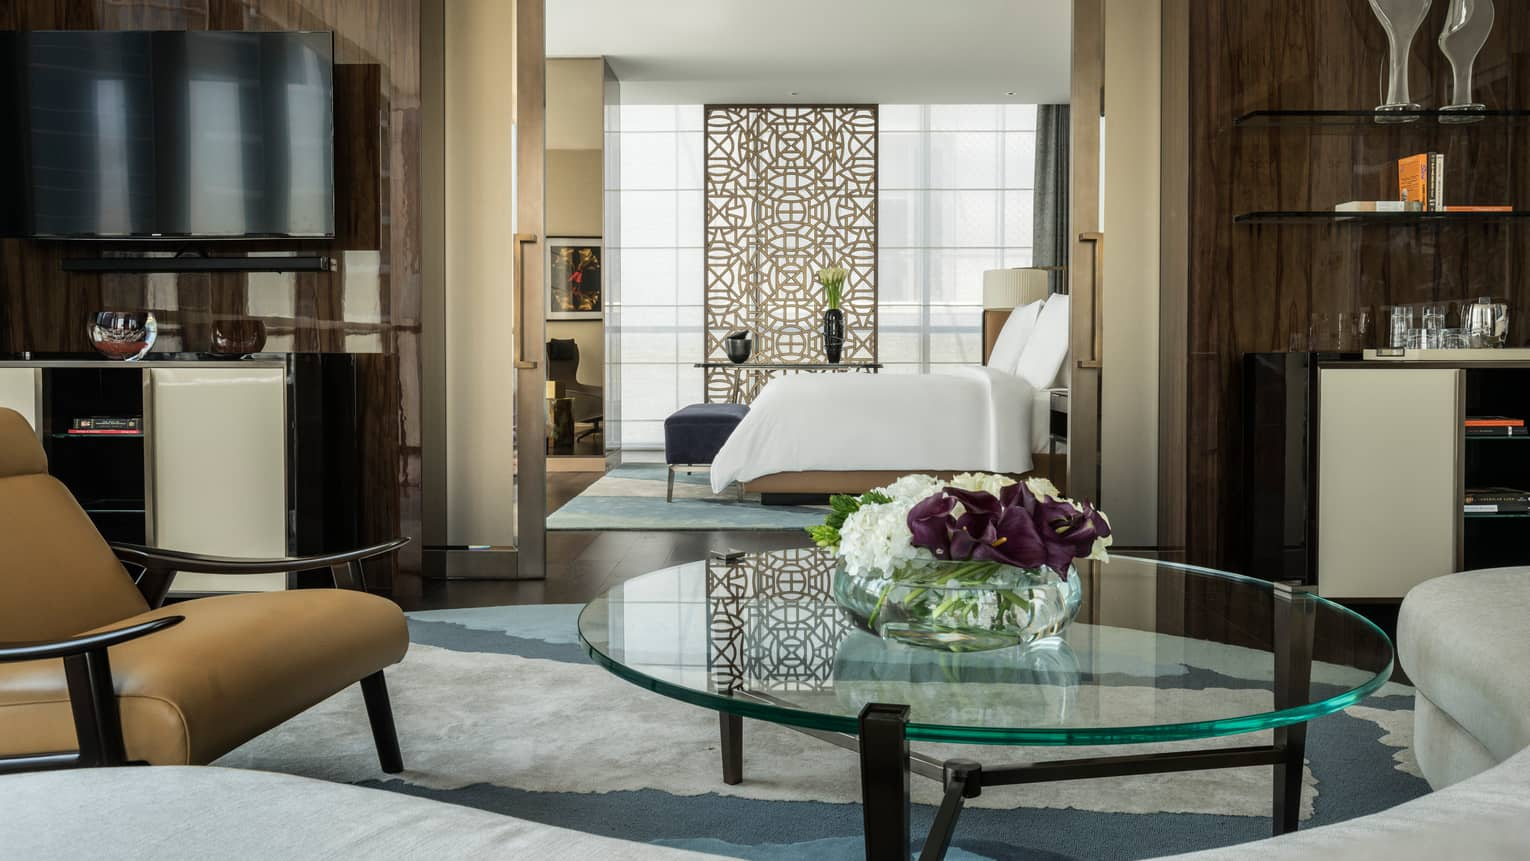 Four Seasons Deluxe Executive Suite living room with round glass coffee table, door to bedroom